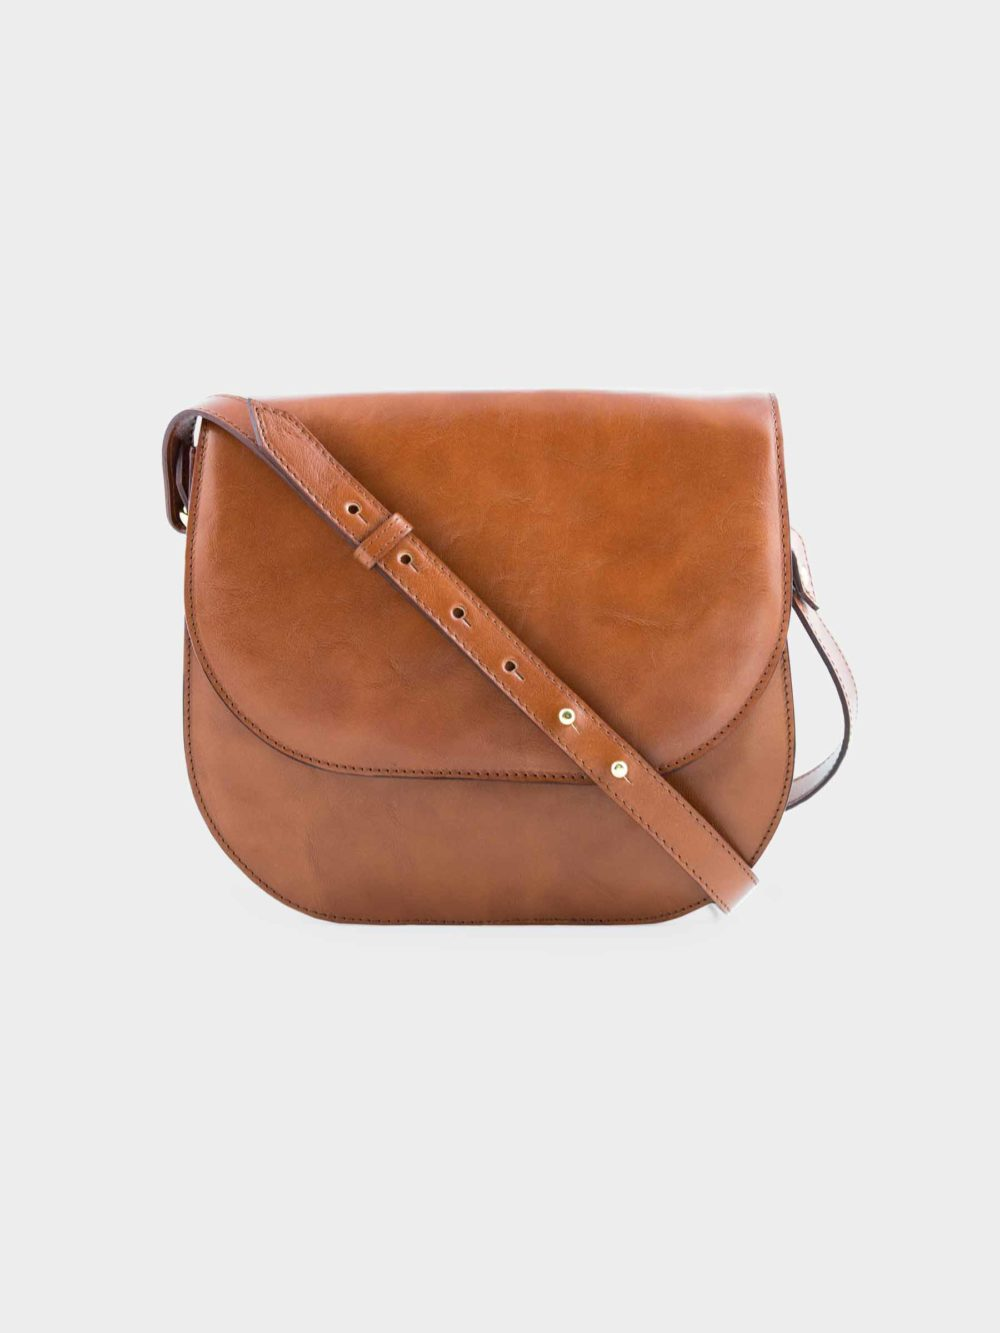 Vivas Leather Goods Leather cross body bag in cognac color - available at utopiast.com